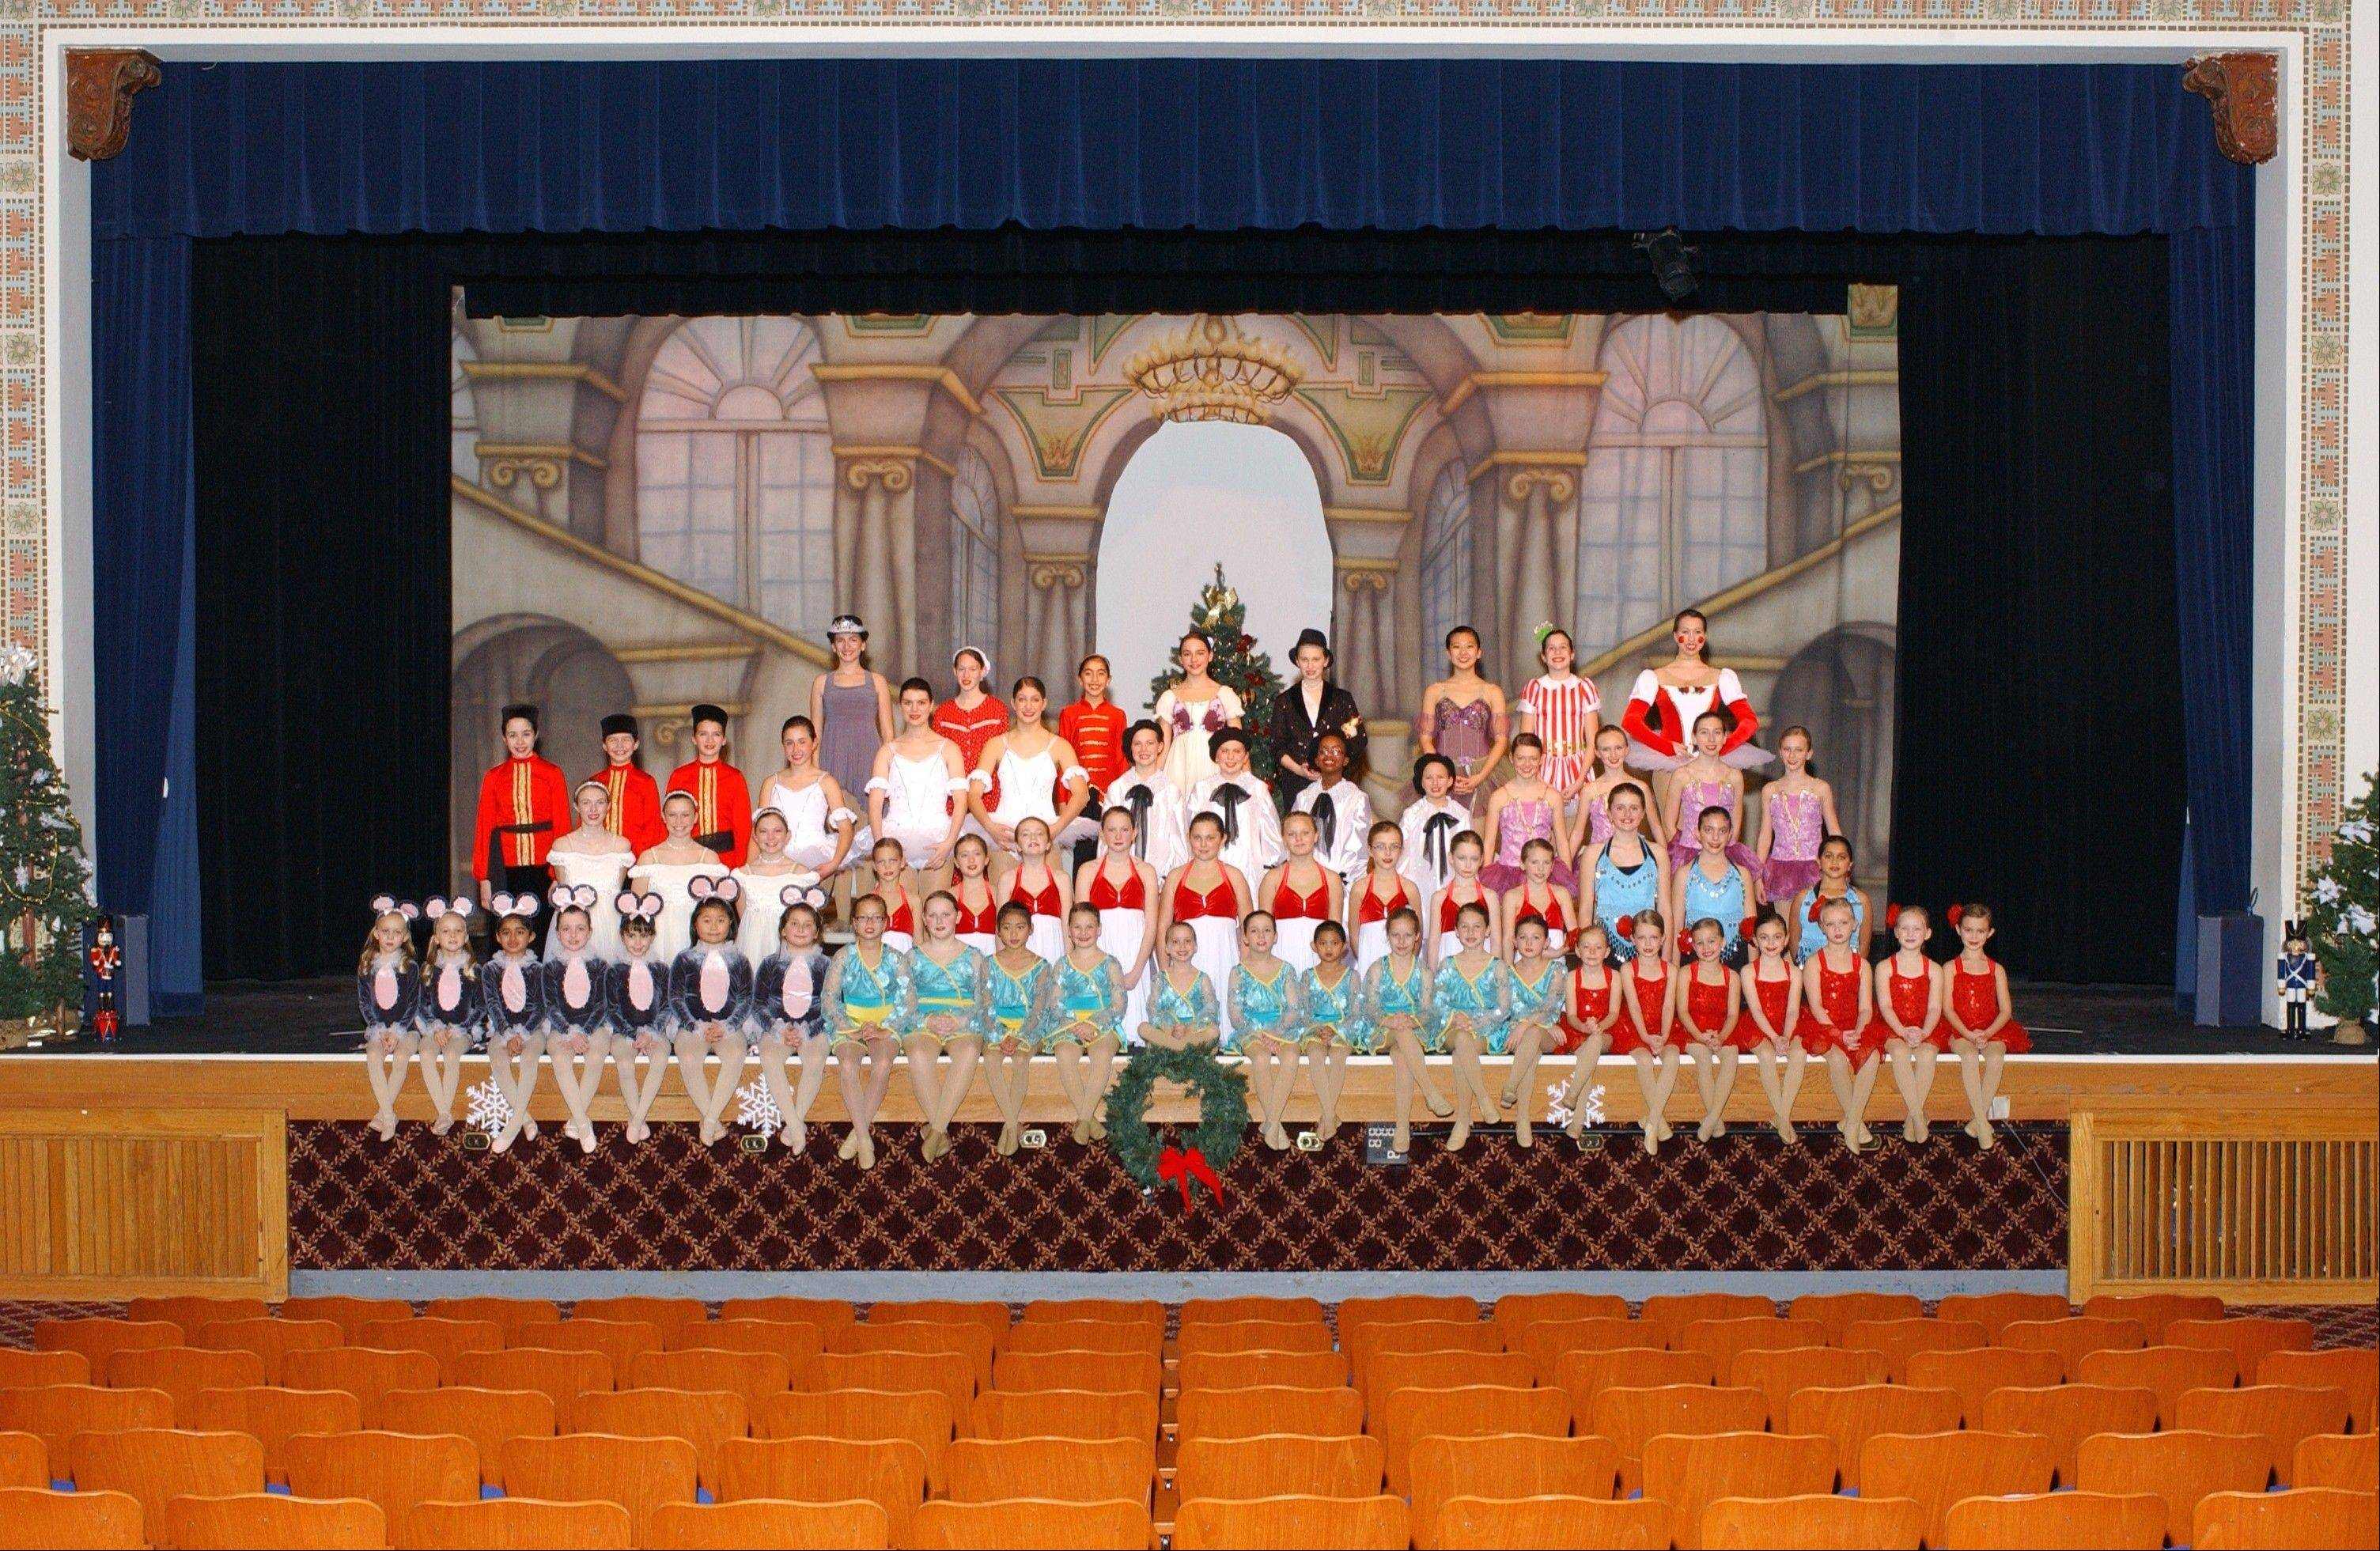 Dancers from the Palatine Park District�s dance program in last year�s production of the �Nutcracker All Jazz�d Up.� The program will host an open house Saturday Aug. 17, at Community Center, 250 E. Wood St., in Palatine.